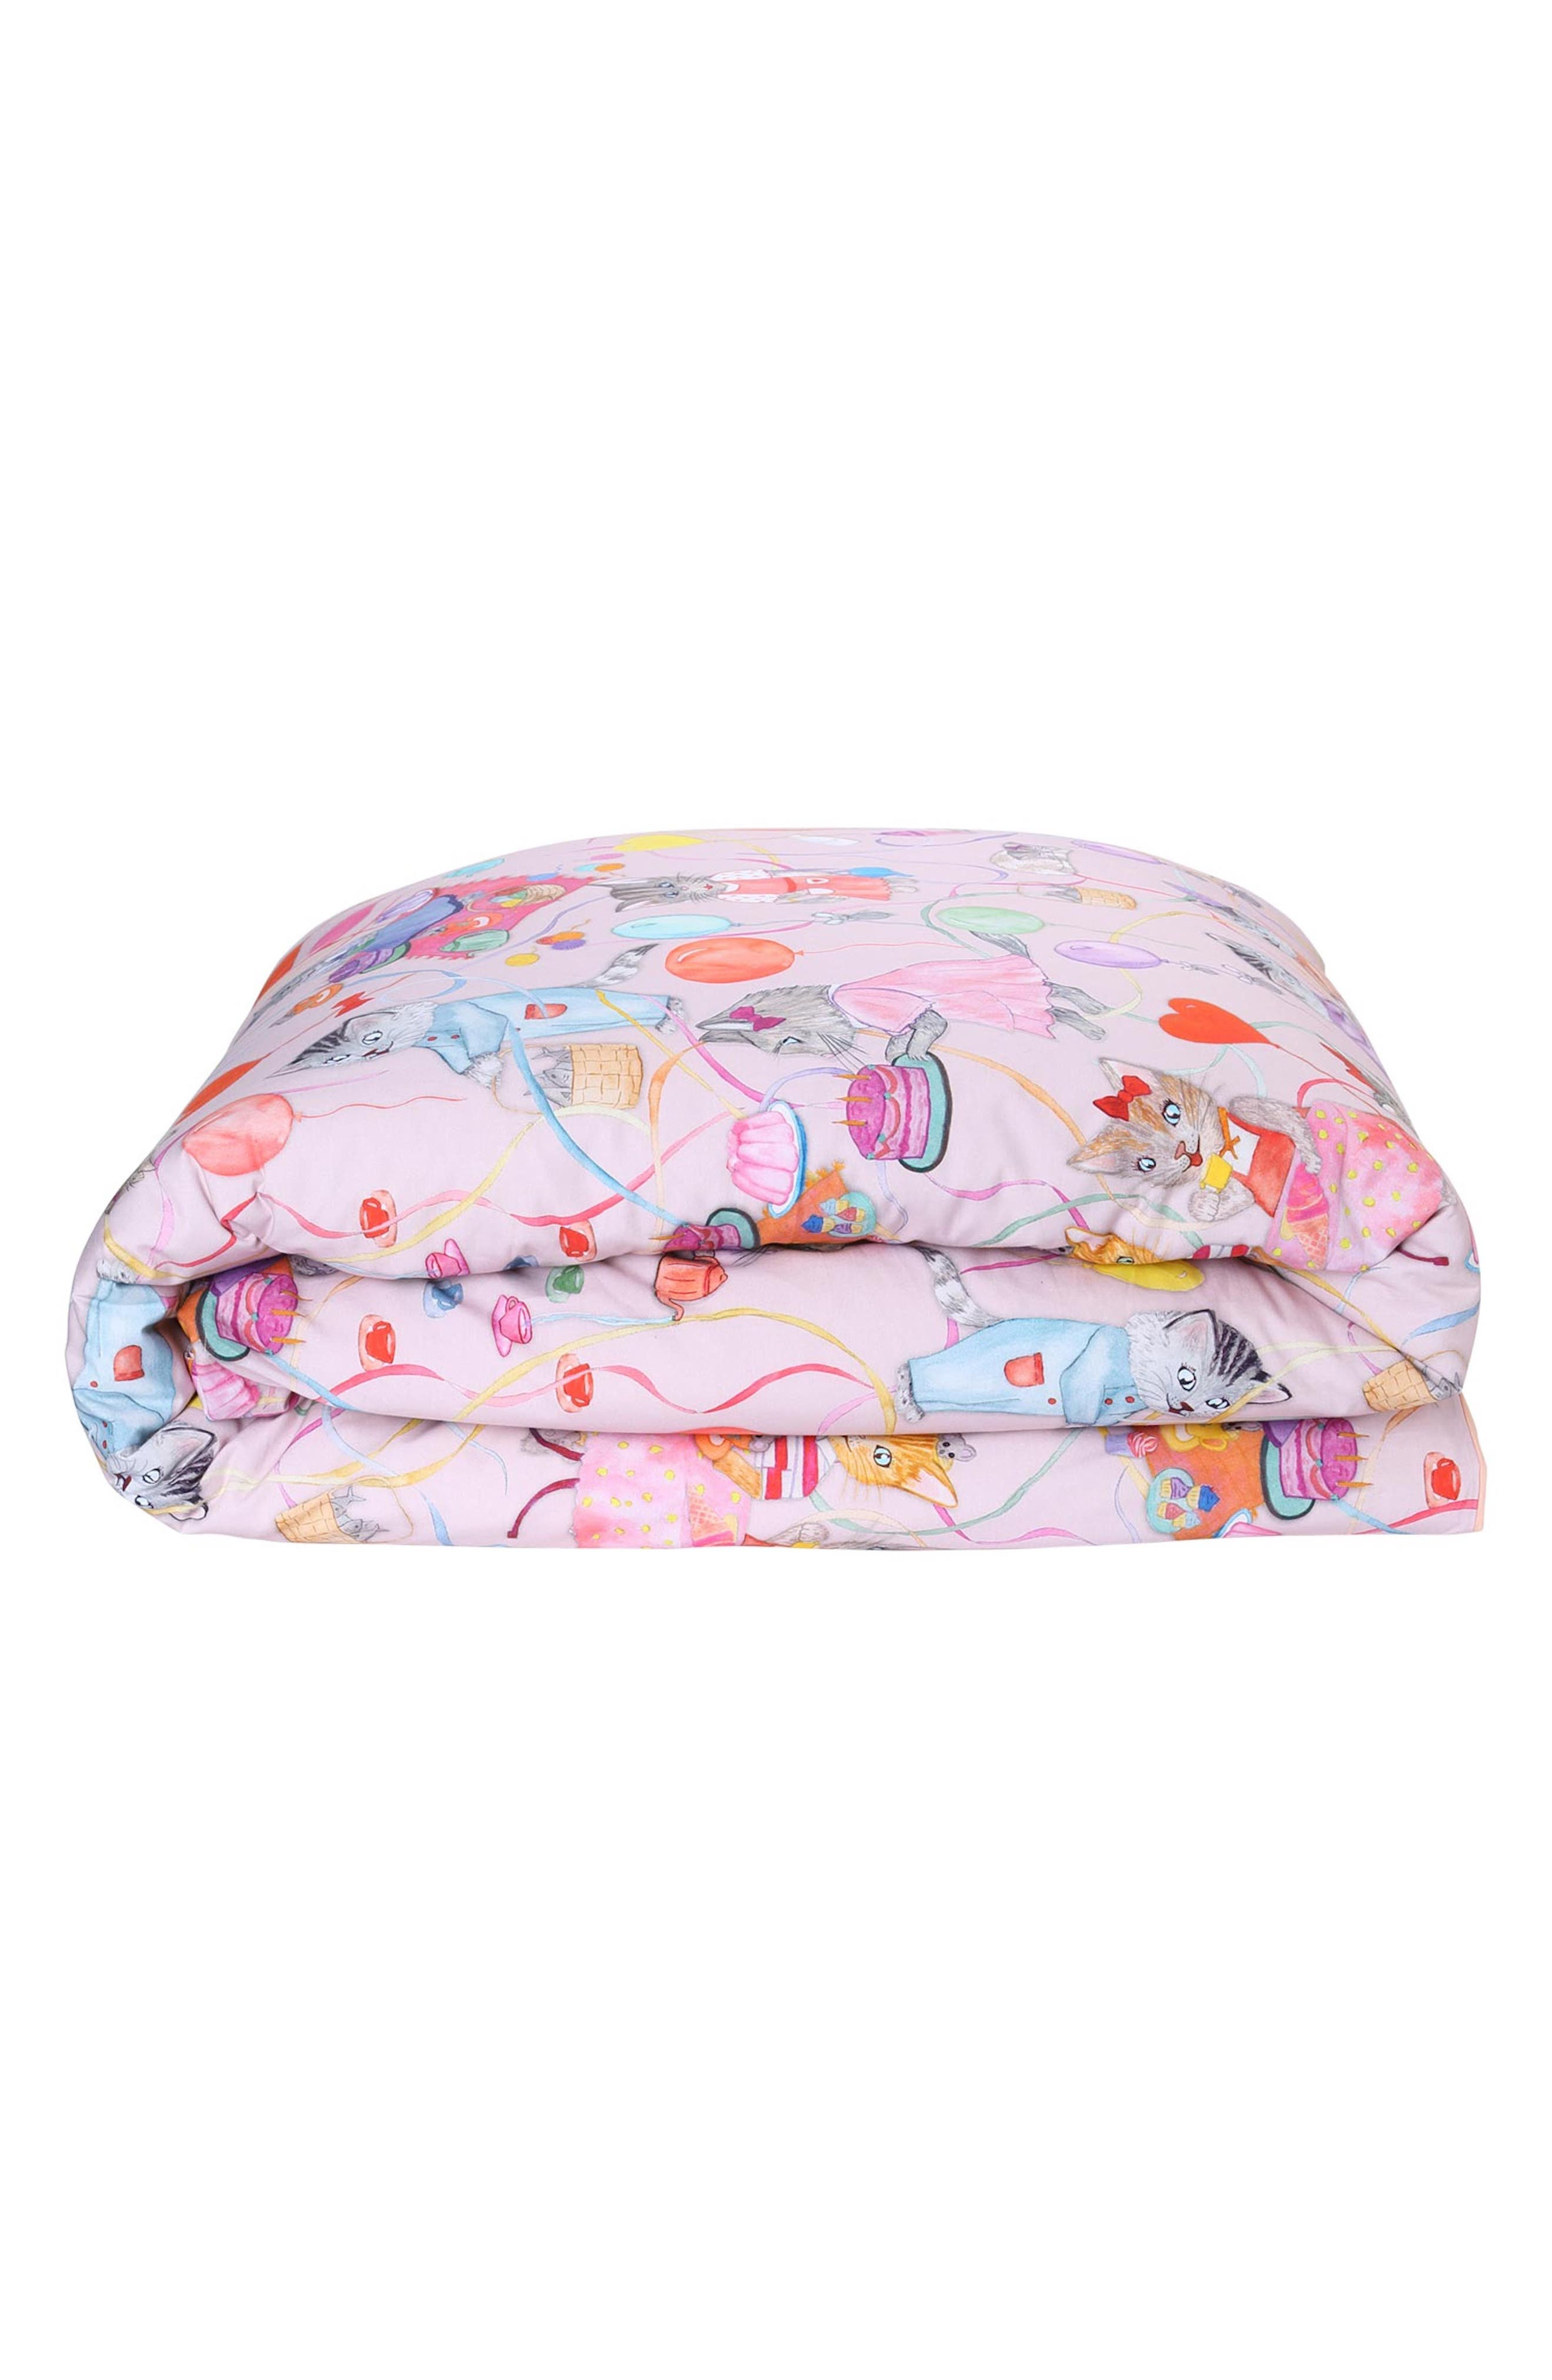 The Kitty Party Cotton Duvet Cover,                             Main thumbnail 1, color,                             Multi